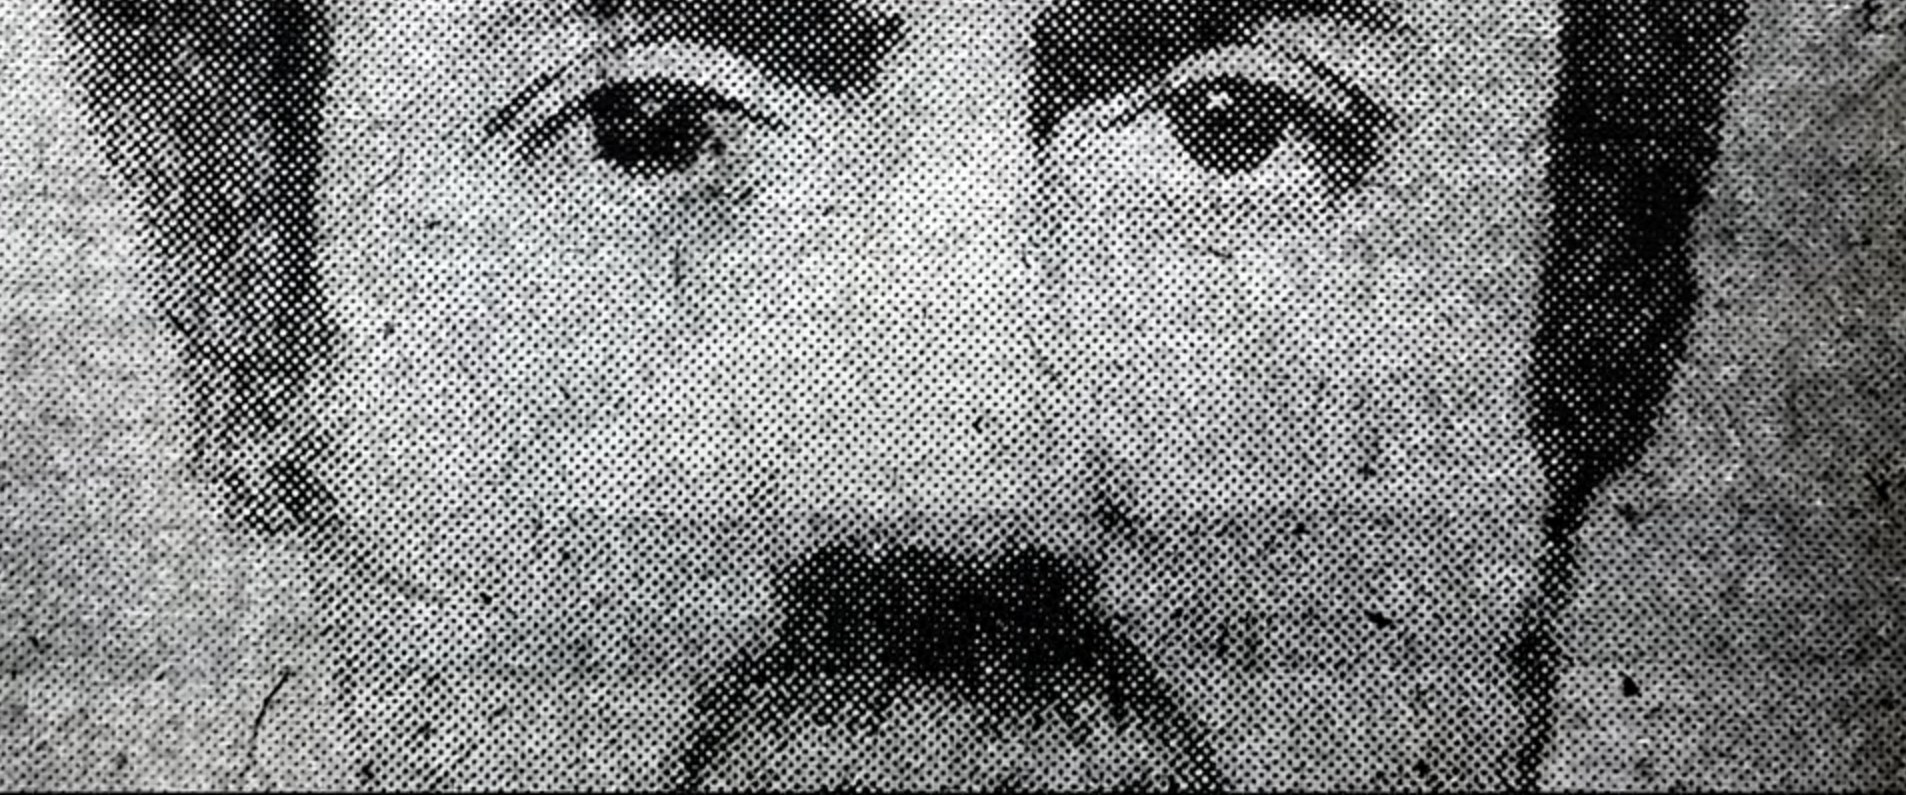 The sketch of the Ripper's face.